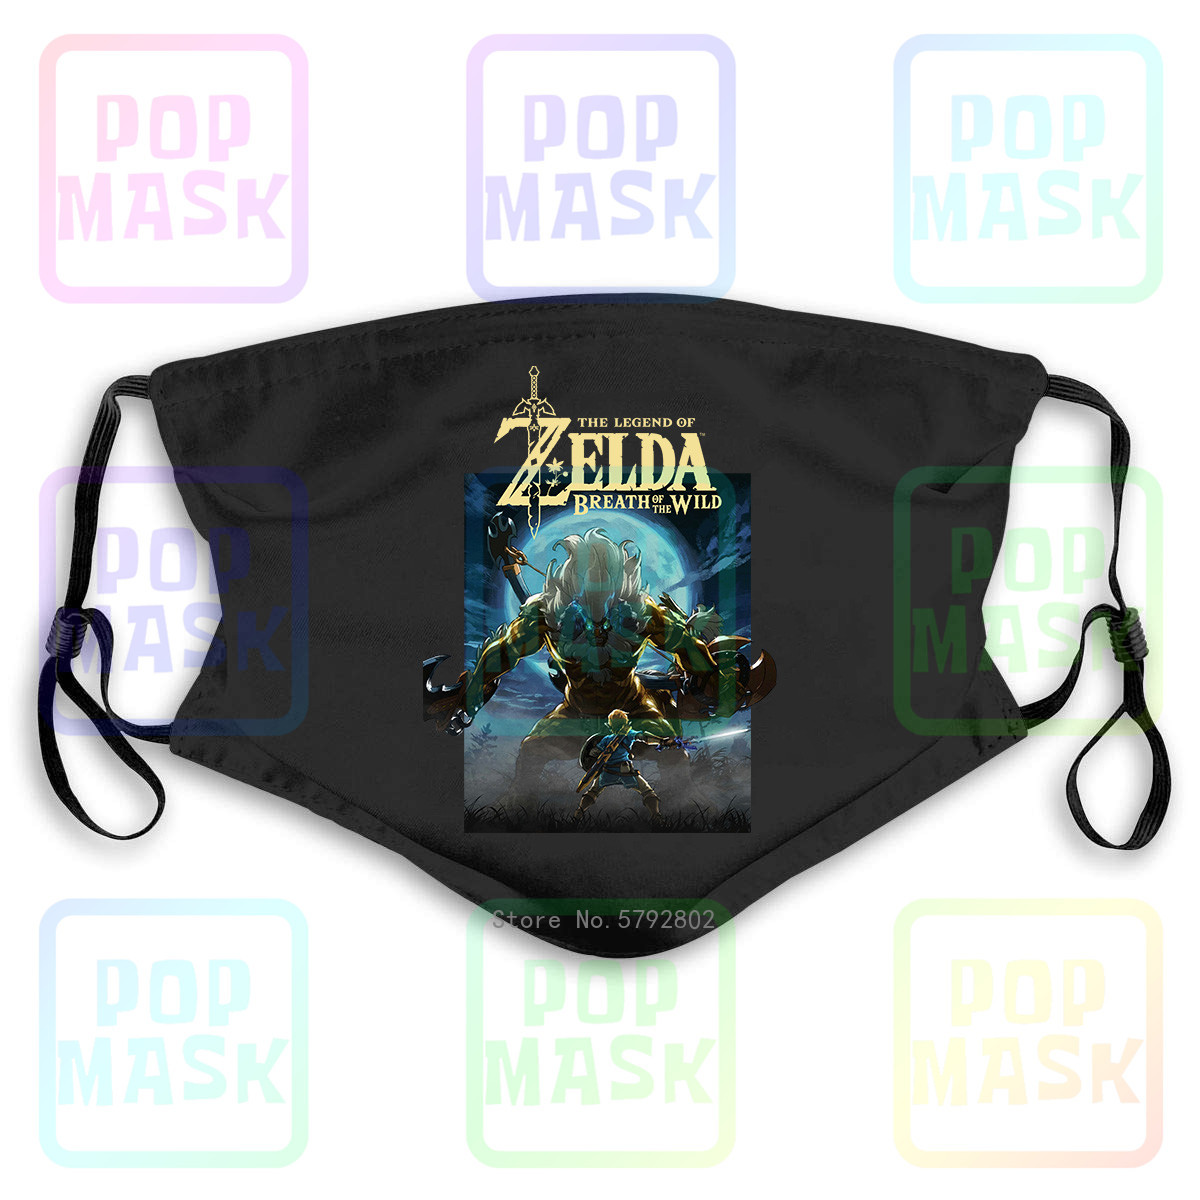 Dust Mask With Filter The Legend Of Zelda Breath Of The Wild Moonlight Washable Reusable Mask